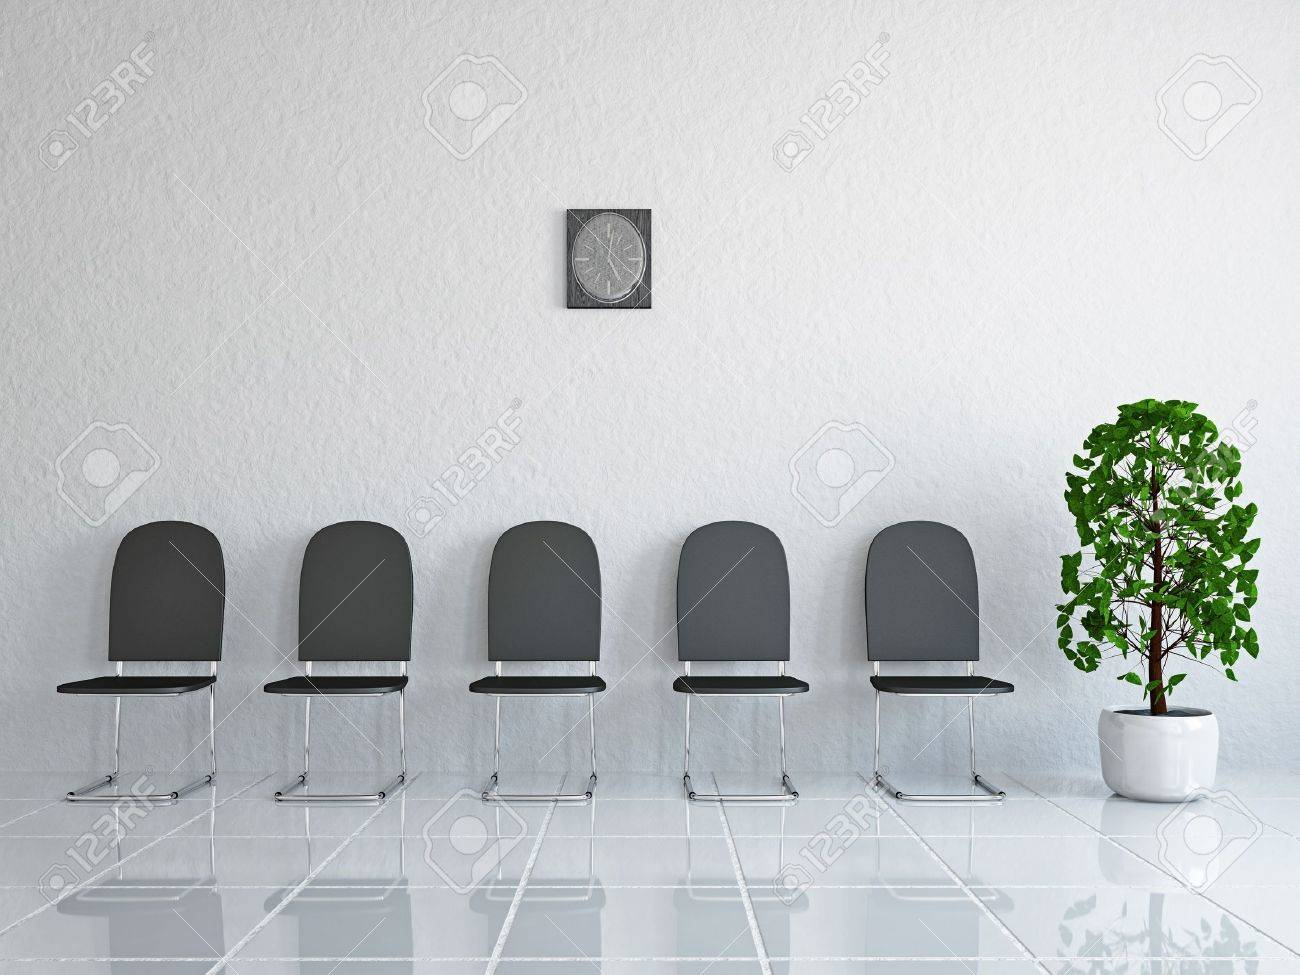 Reception With Leather Chairs Near A Wall Stock Photo, Picture And ...